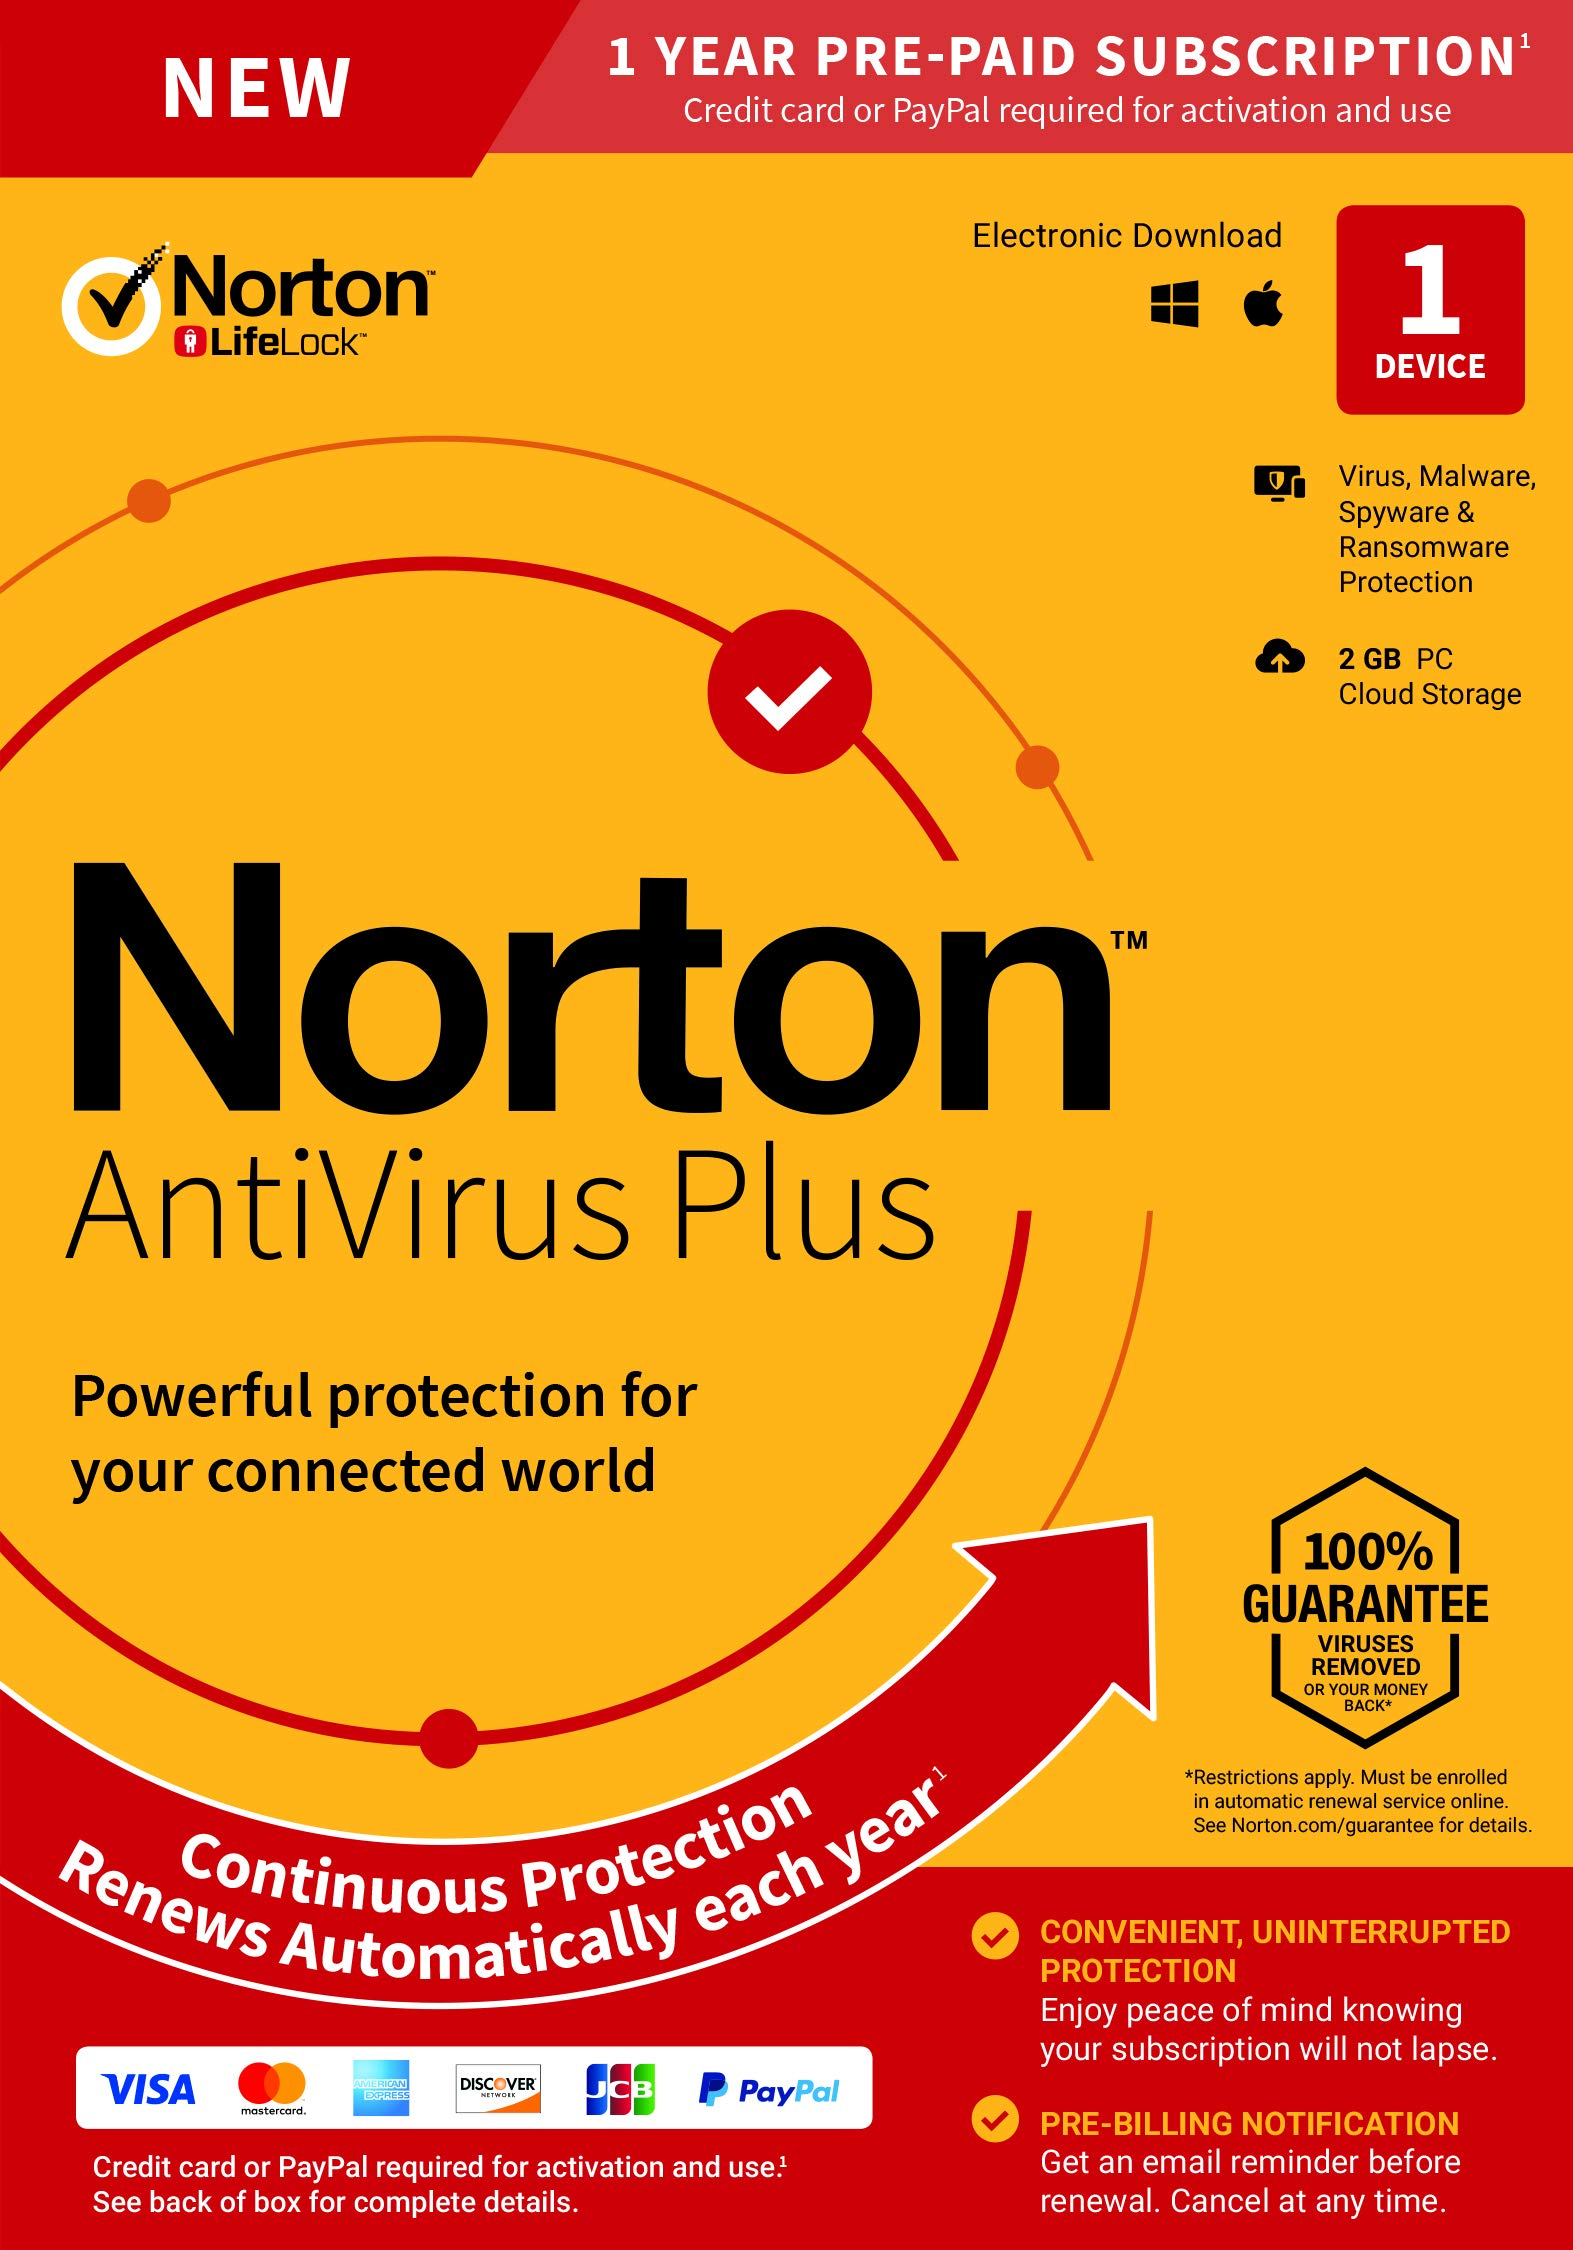 NEW Norton AntiVirus Plus - Antivirus software for 1 Device with Auto-Renewal - Includes Password Manager, Smart Firewall and PC Cloud Backup by Symantec